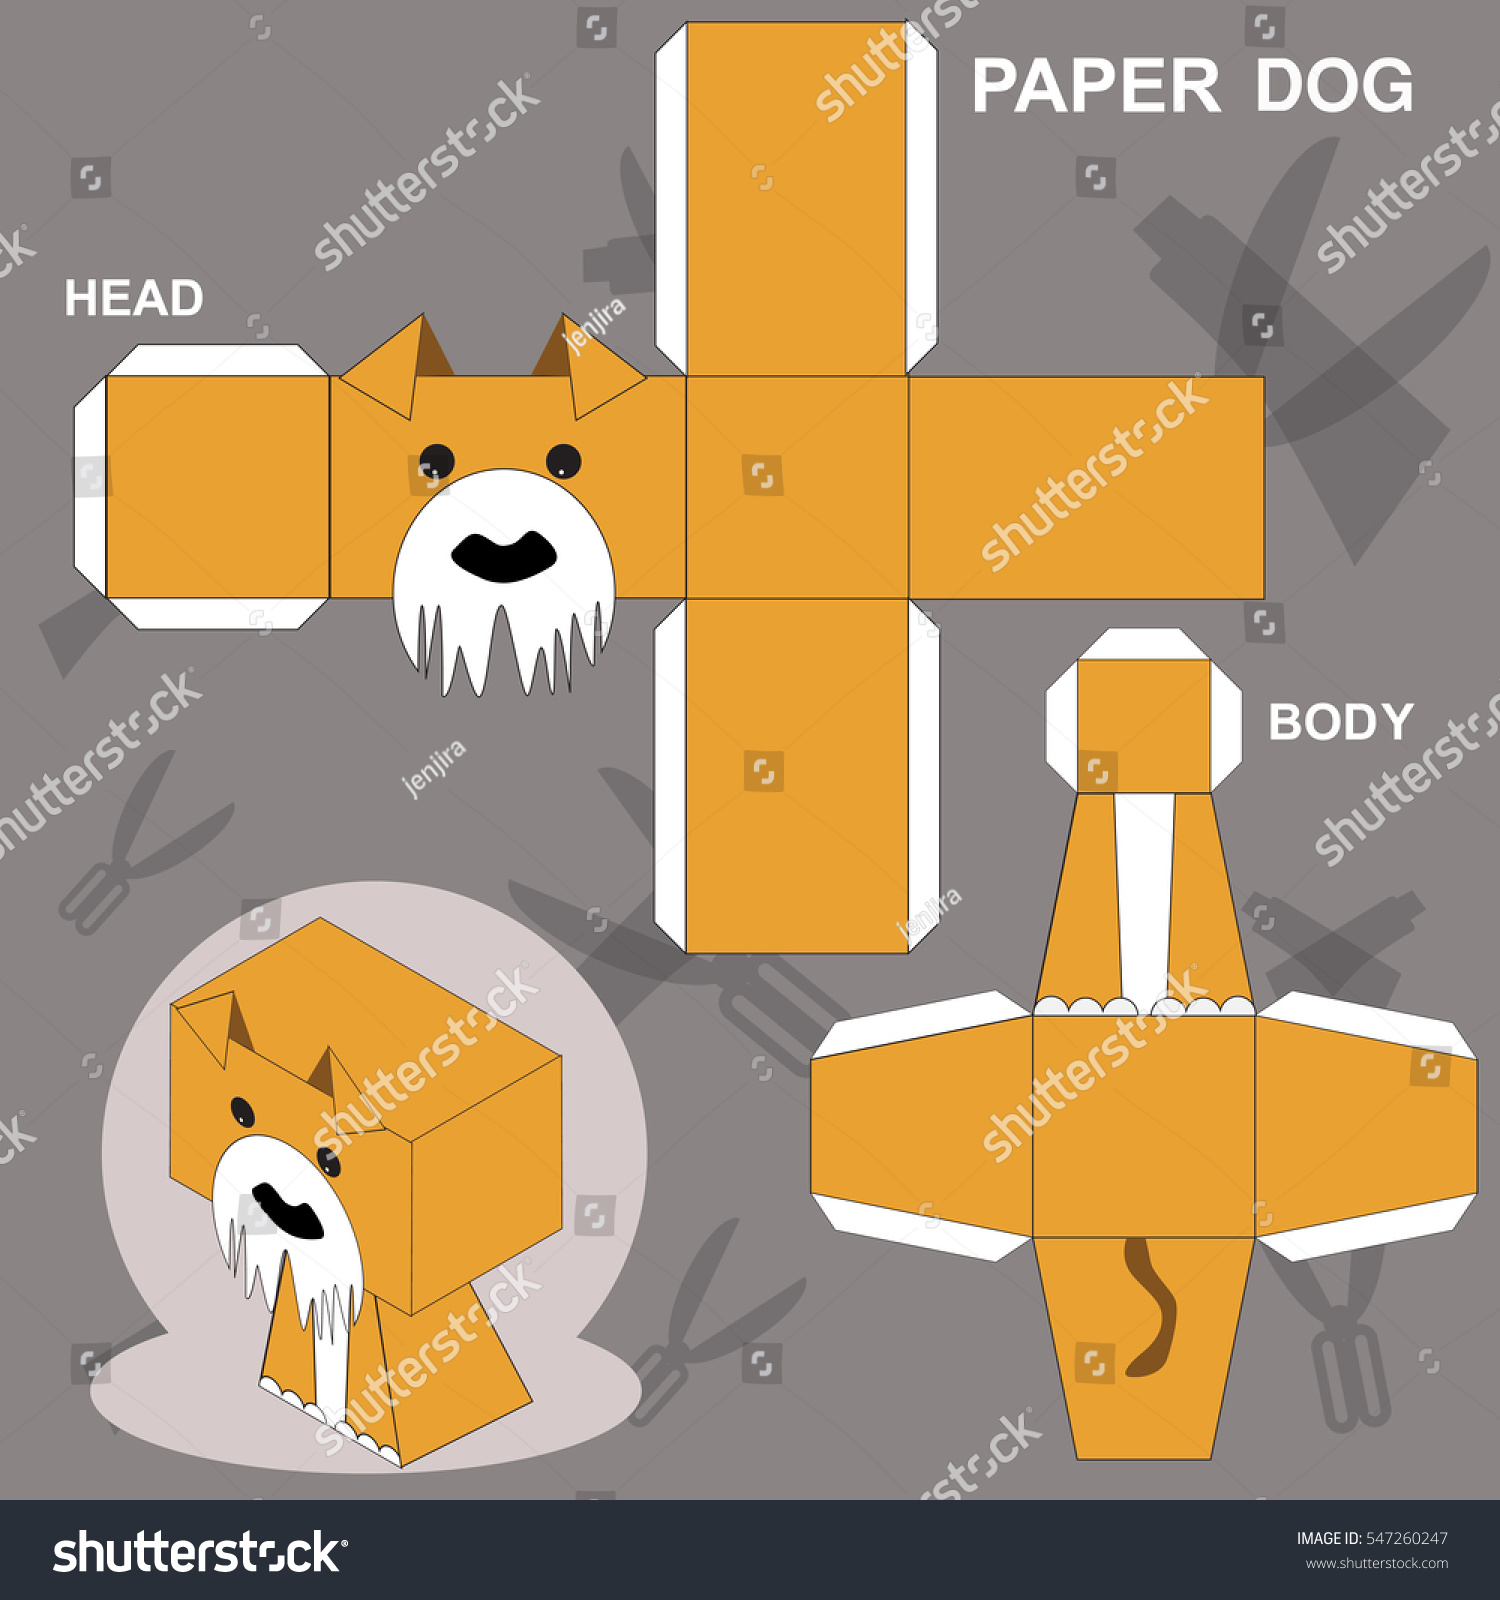 Dog Paper Craft Template Stock Vector Royalty Free 547260247